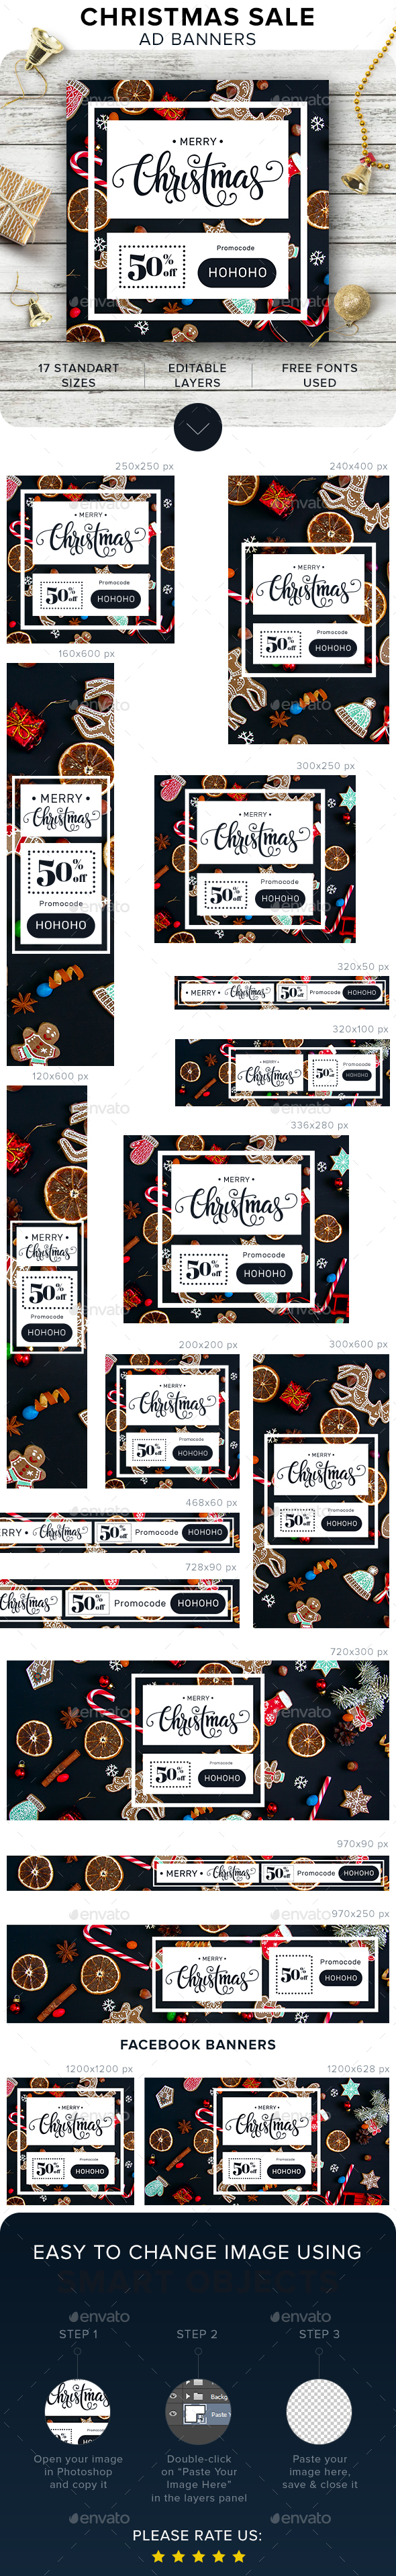 Merry Christmas Banners - Banners & Ads Web Elements